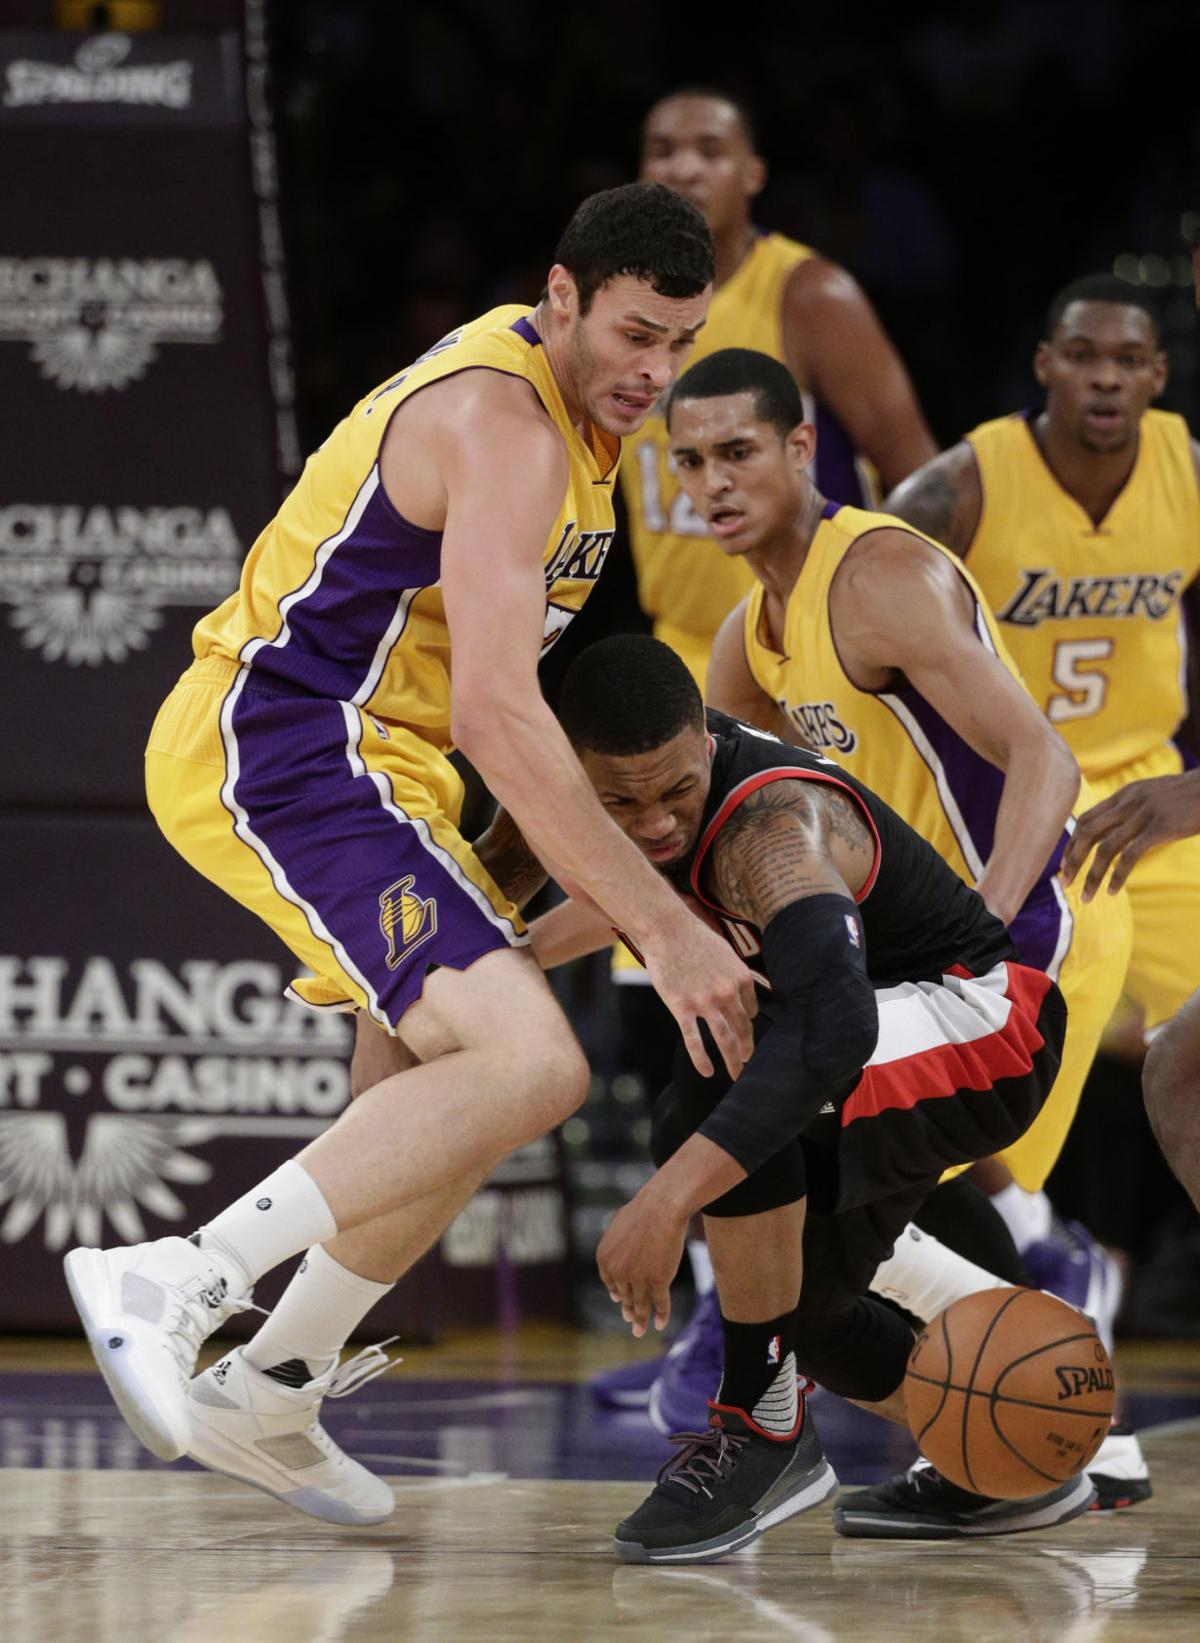 Former Wyoming standout Larry Nance Jr breaks nose in Lakers